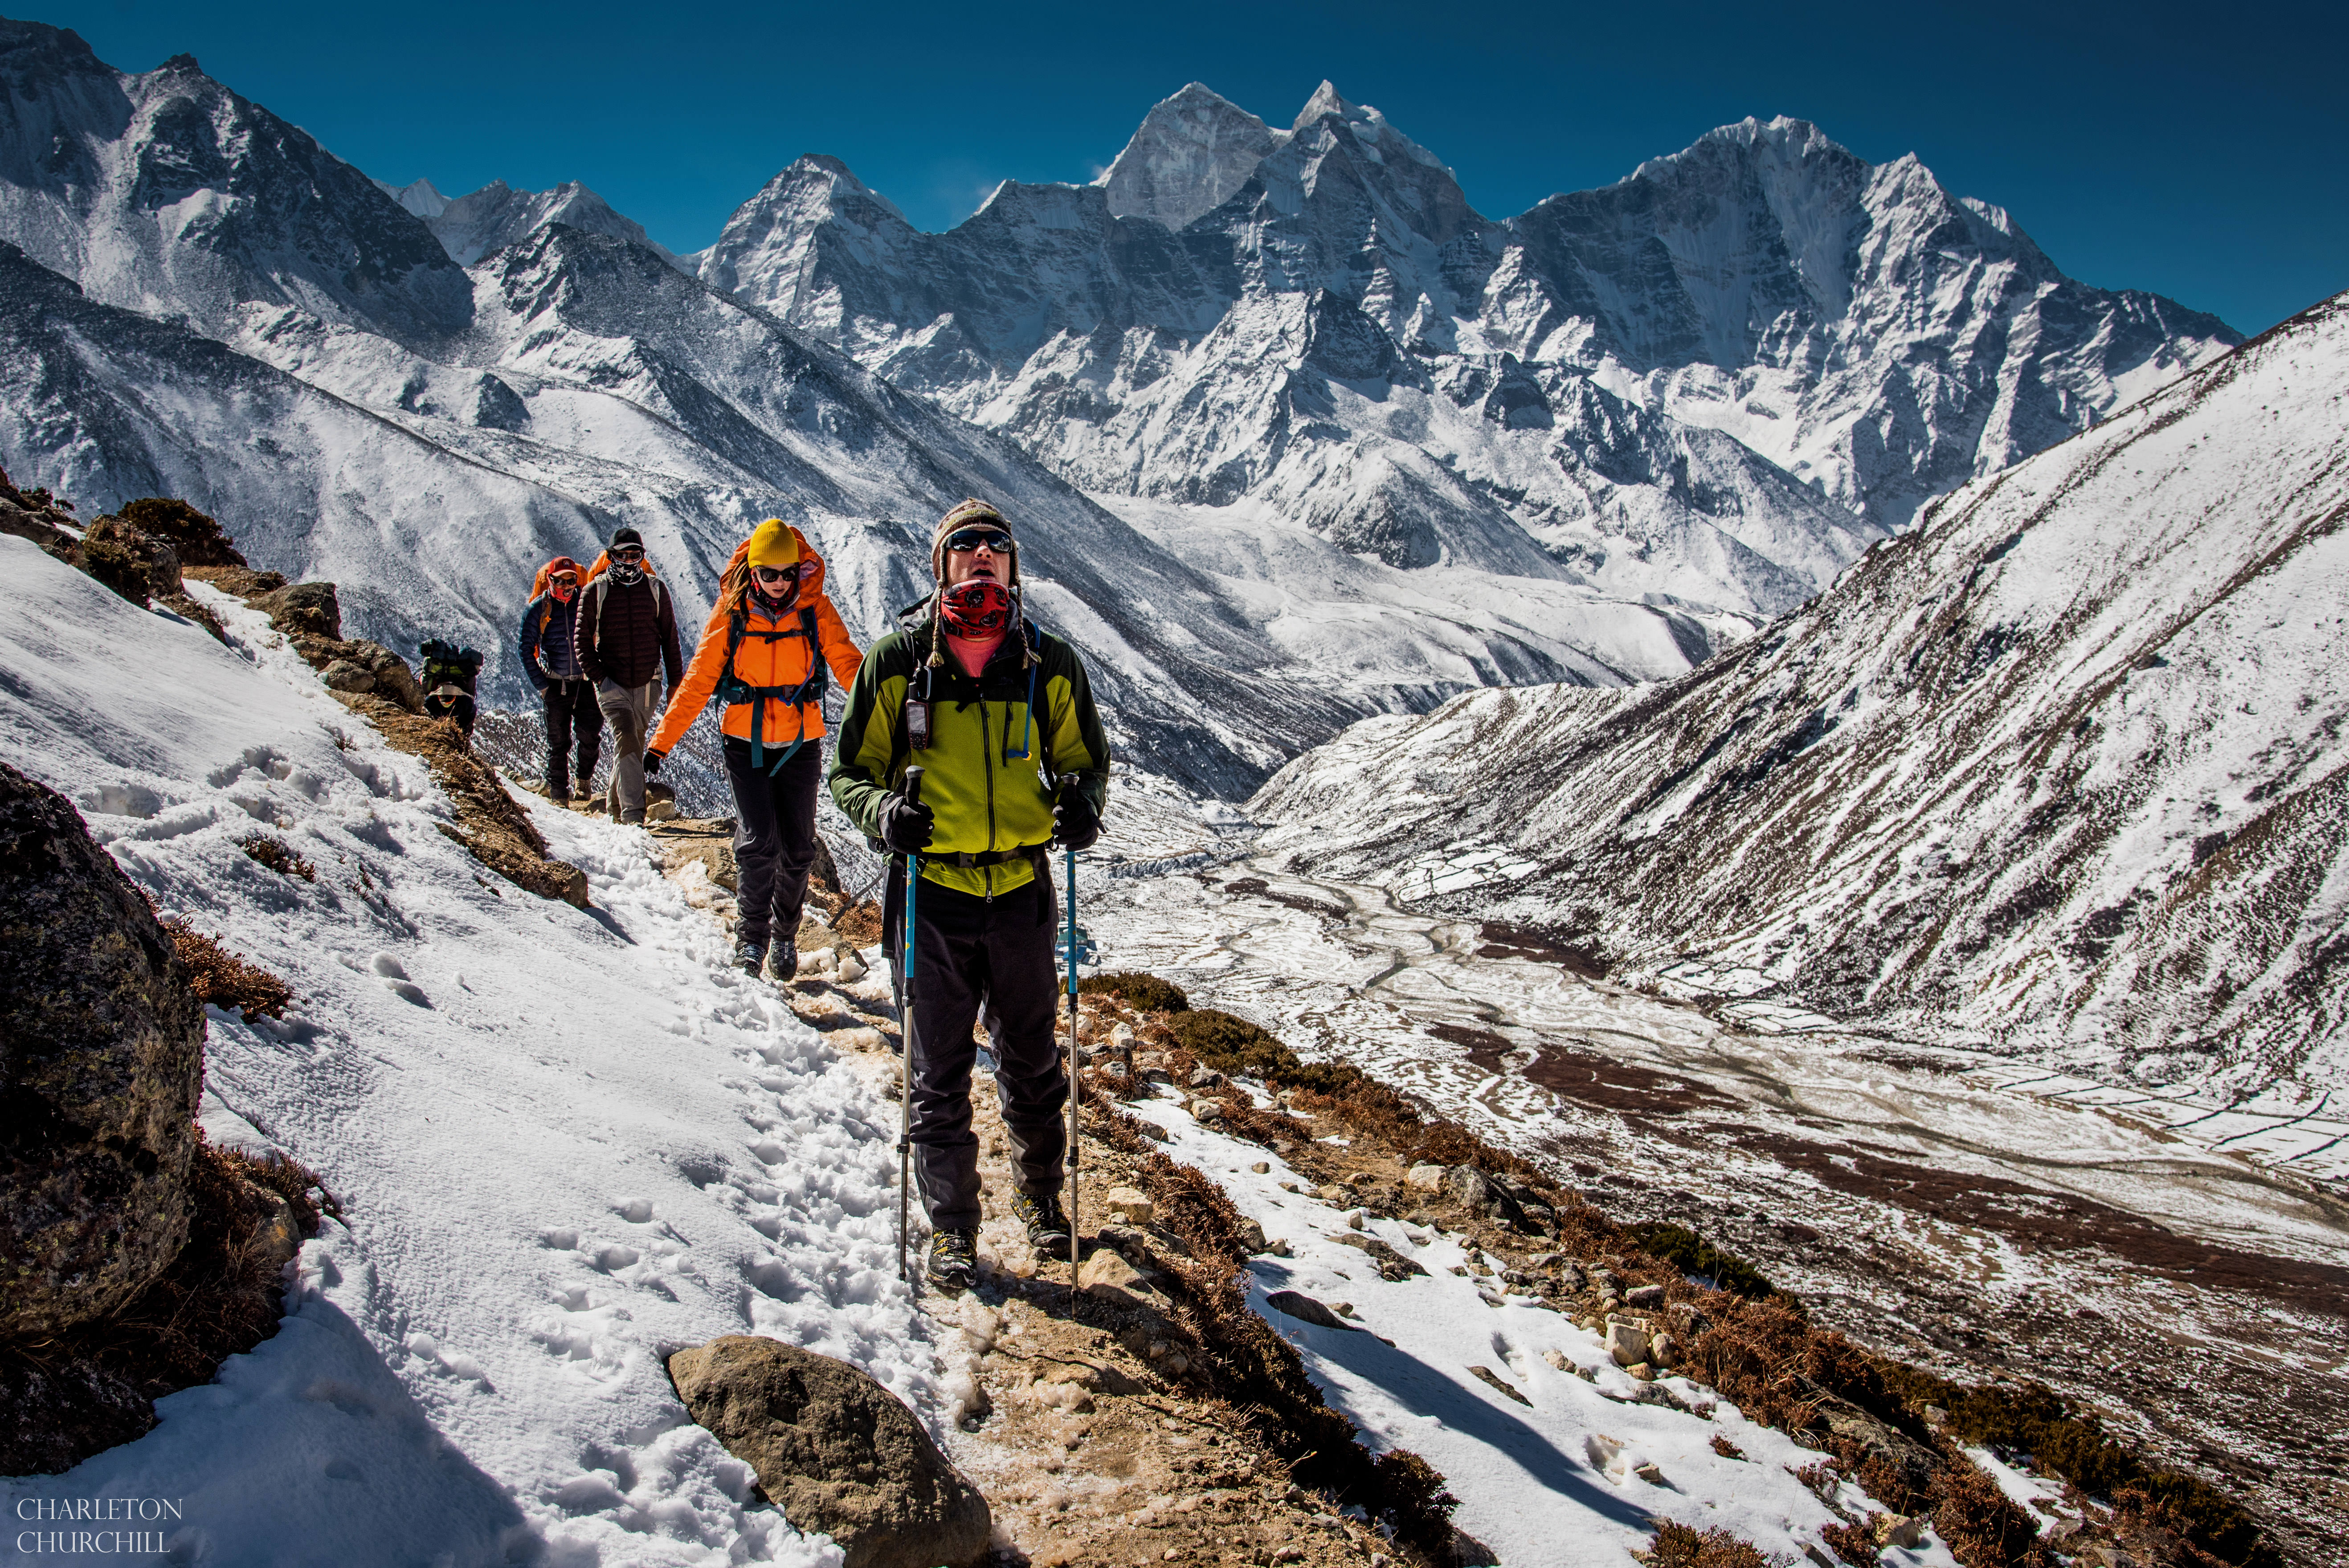 everest base camp trek photo with hikers trekking through the snow